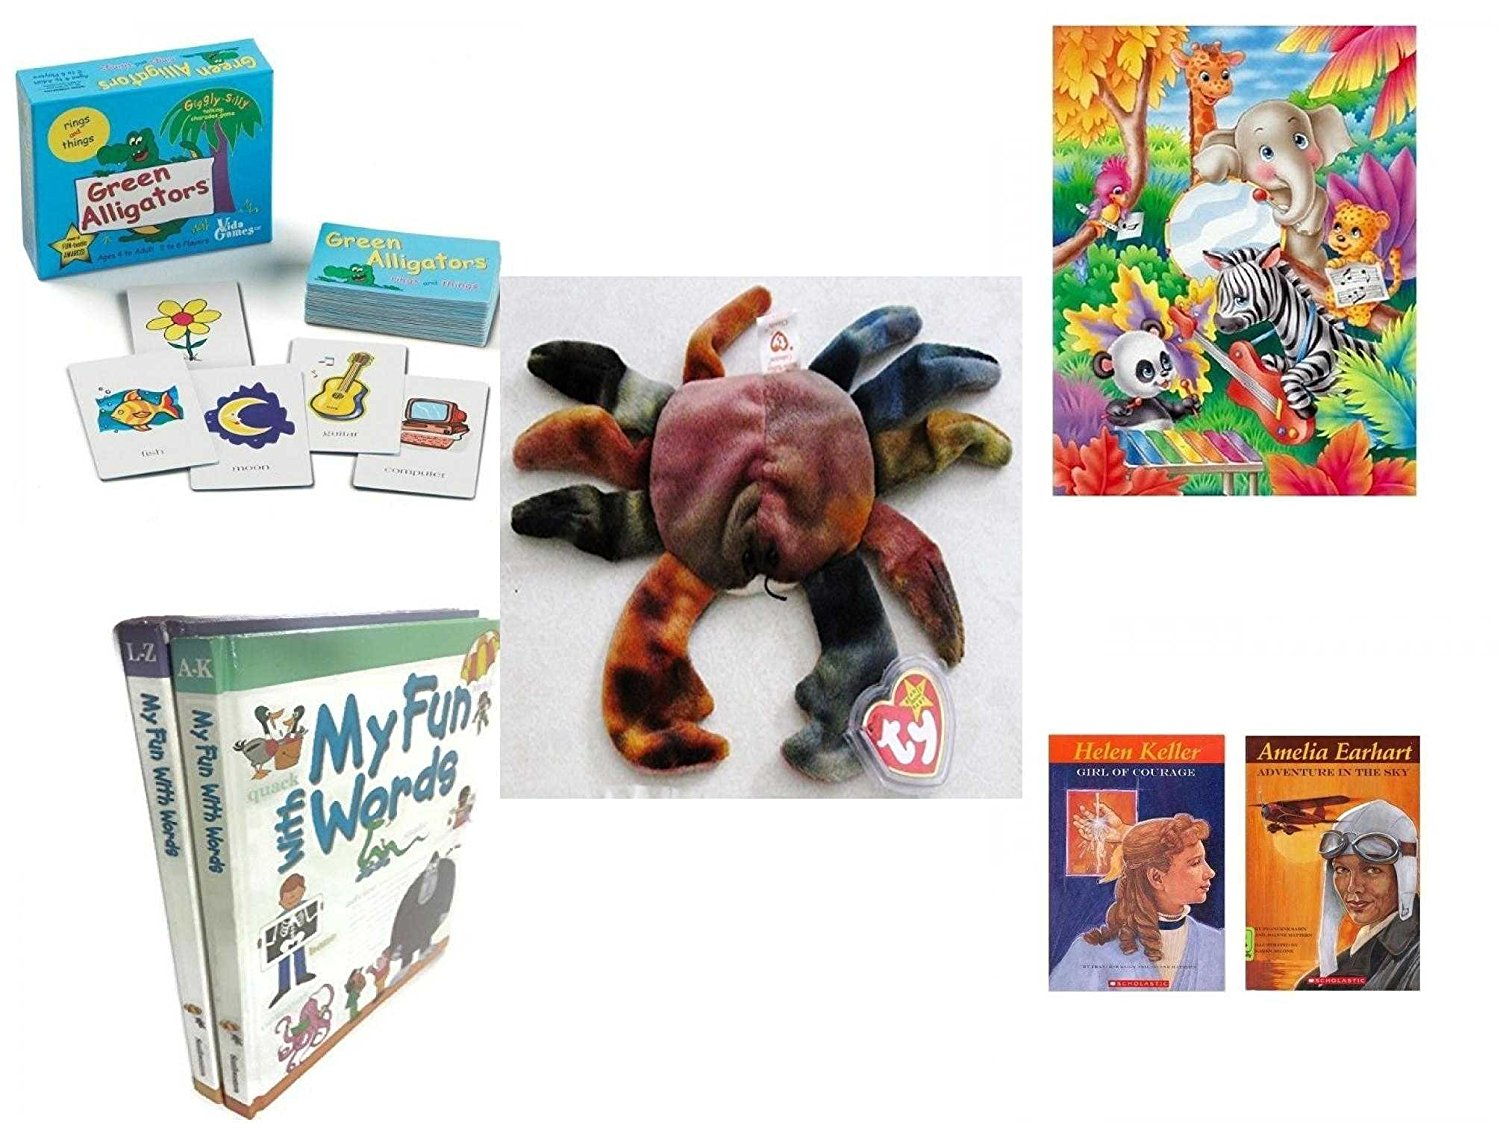 Children's Gift Bundle - Ages 3-5 [5 Piece] - Green Alligators, Zoo & Farm Animals Card Game - Jungle Music Puzzle 63 Piece Toy - Ty Teenie Beanie Baby - Claude the Crab - My Fun With Words Dictiona